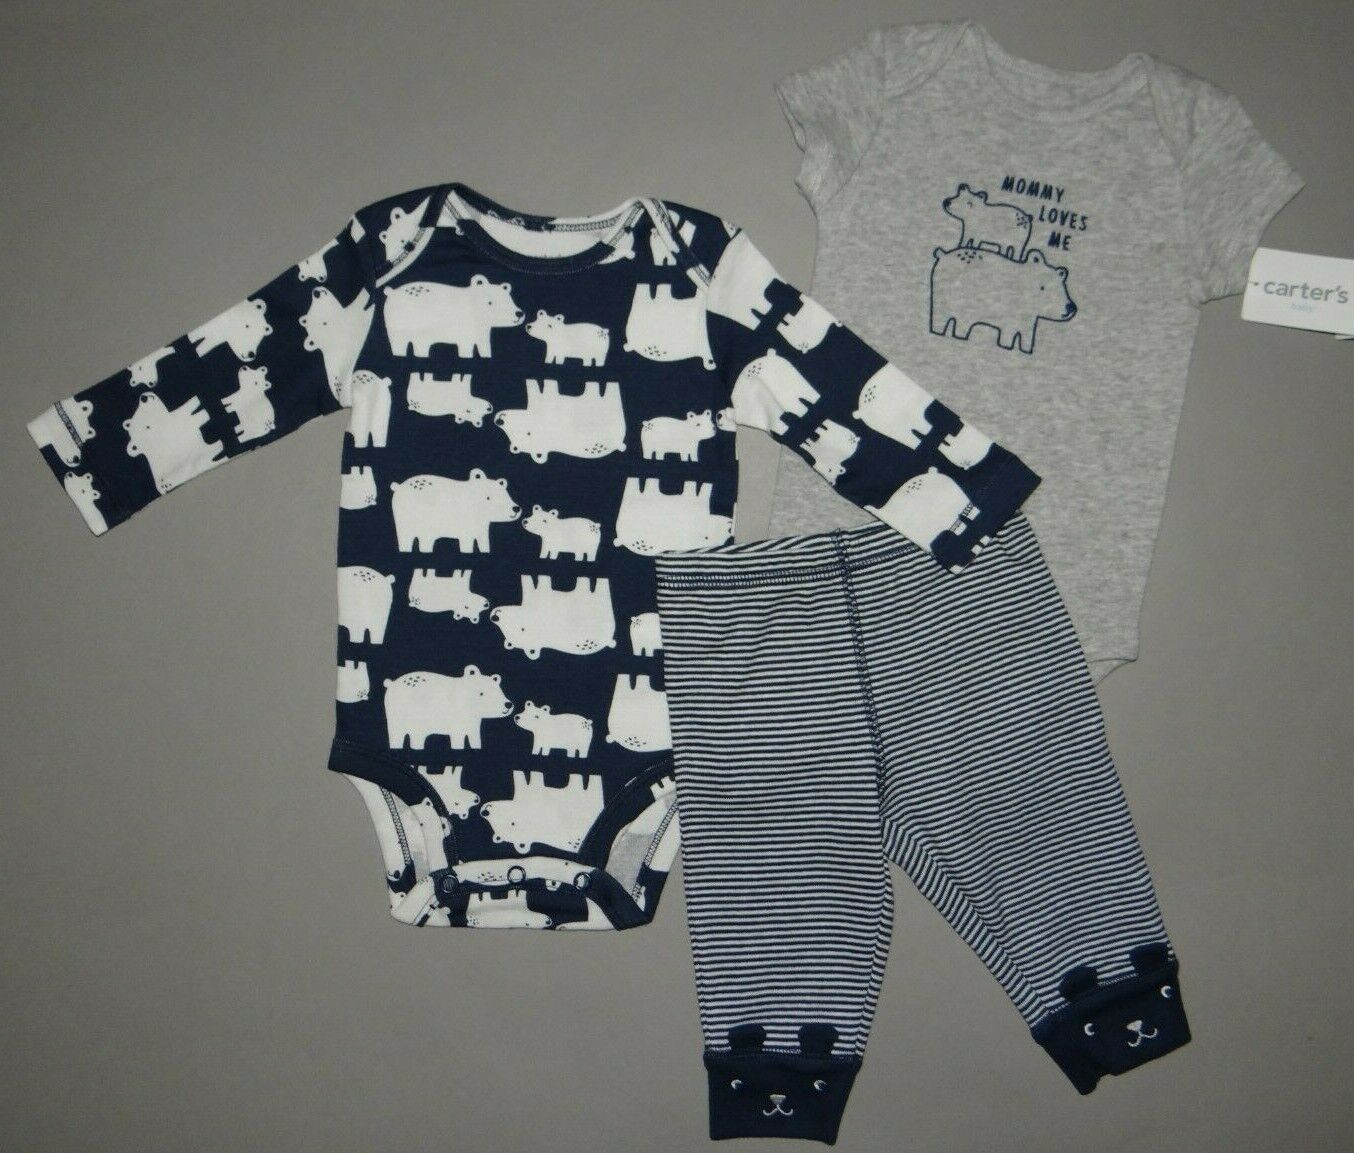 Baby boy clothes, 18 months, Carter's 3 piece set/SEE DETAIL